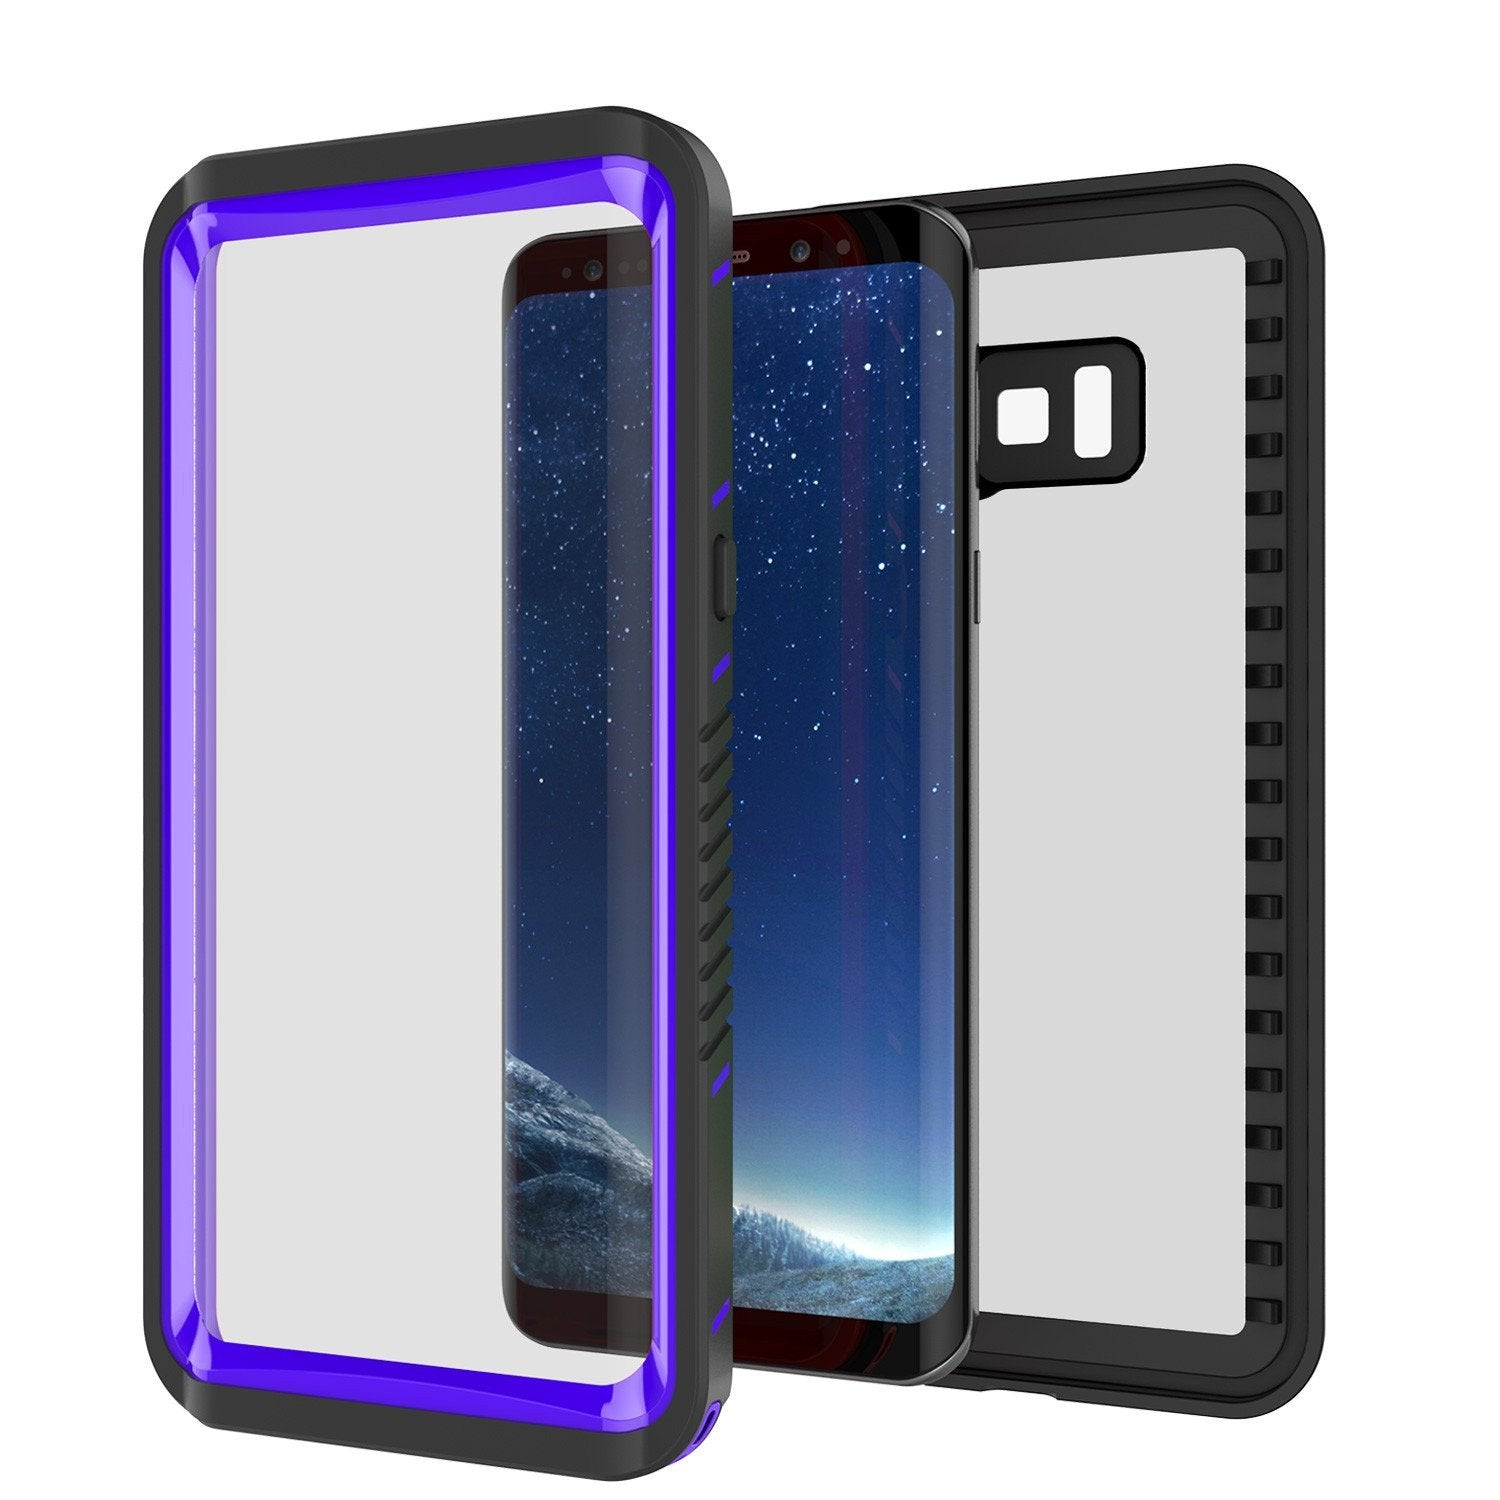 Galaxy S8 Case, Punkcase [Extreme Series] Armor Purple Cover